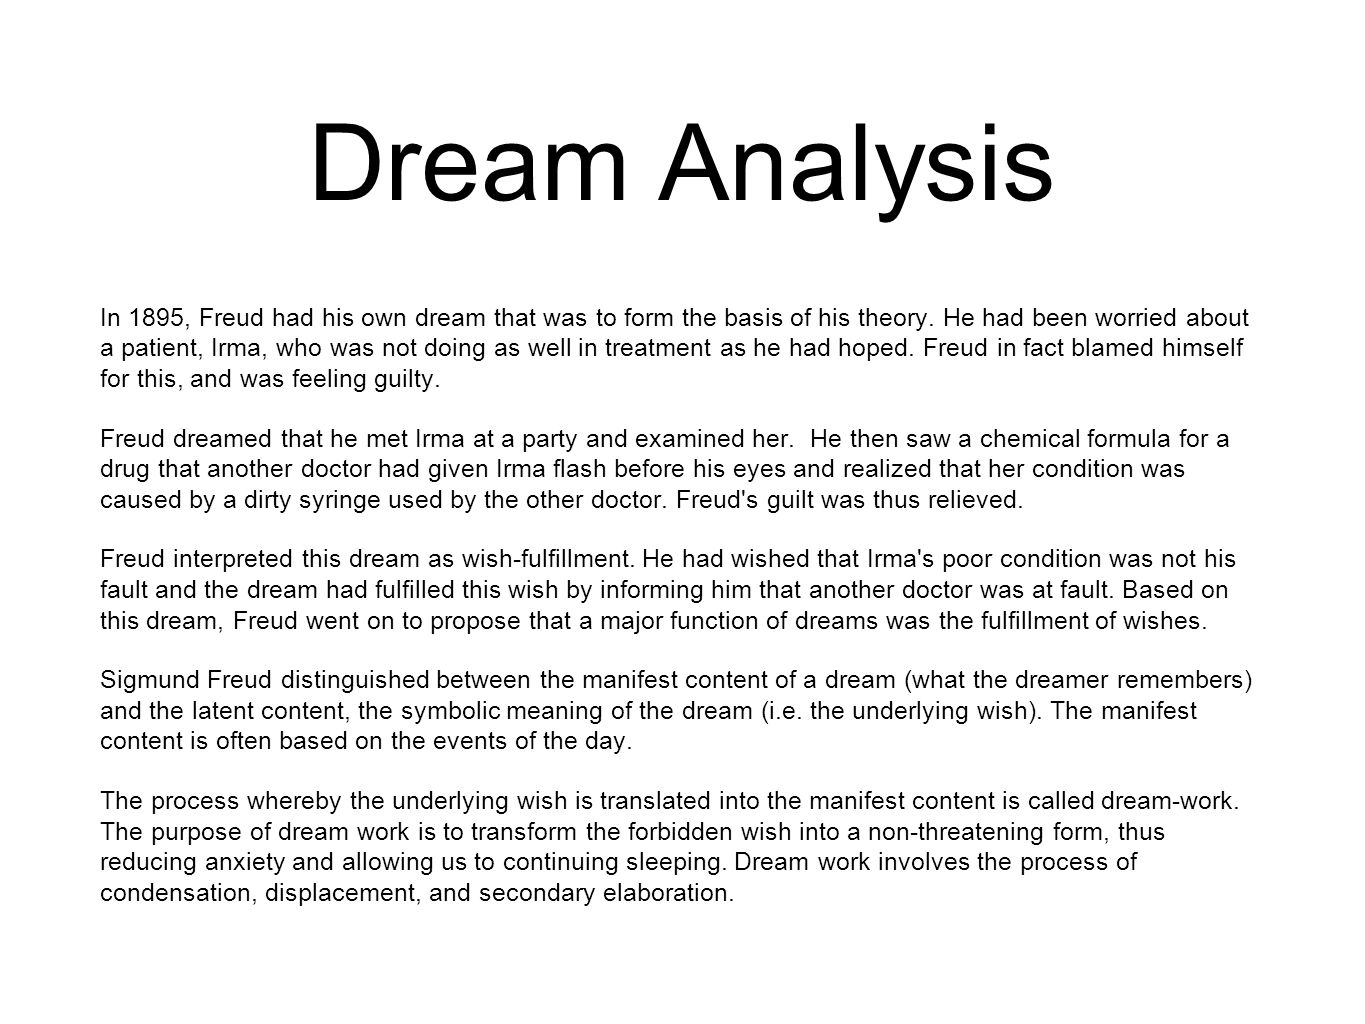 016 Research Paper Dreamanalysis Psychology Topics On Rare Dreams Articles Full